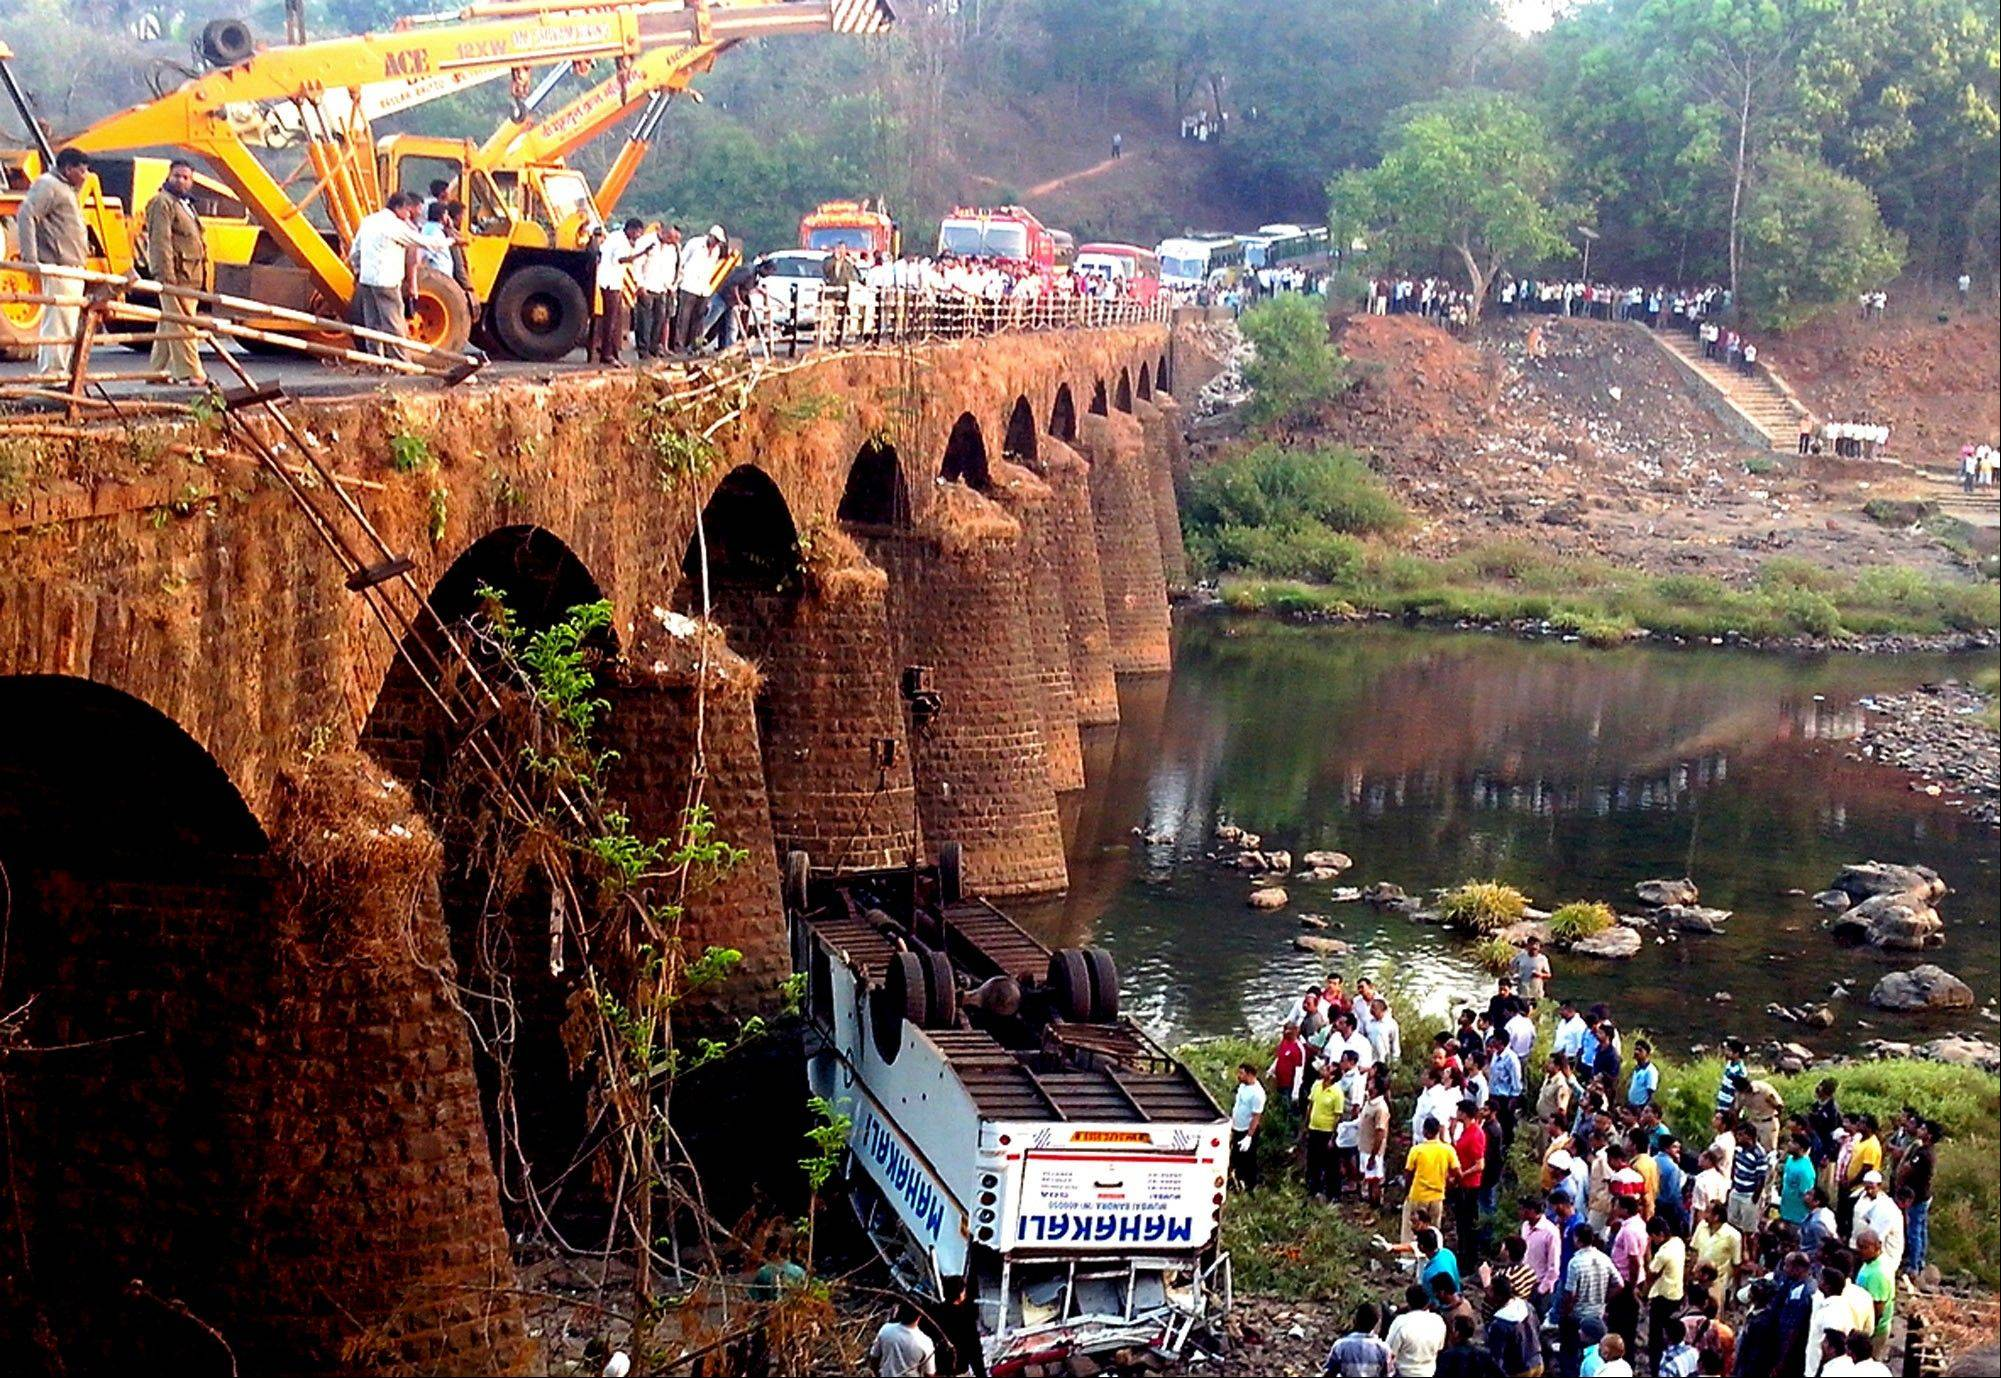 Rescuers and others gather at the site of a bus accident in Ratnagiri district, in the western Indian state of Maharashtra, Tuesday. The bus packed with passengers crashed through a guard rail and fell off a bridge, killing at least 37 people and injuring another 15, police said.